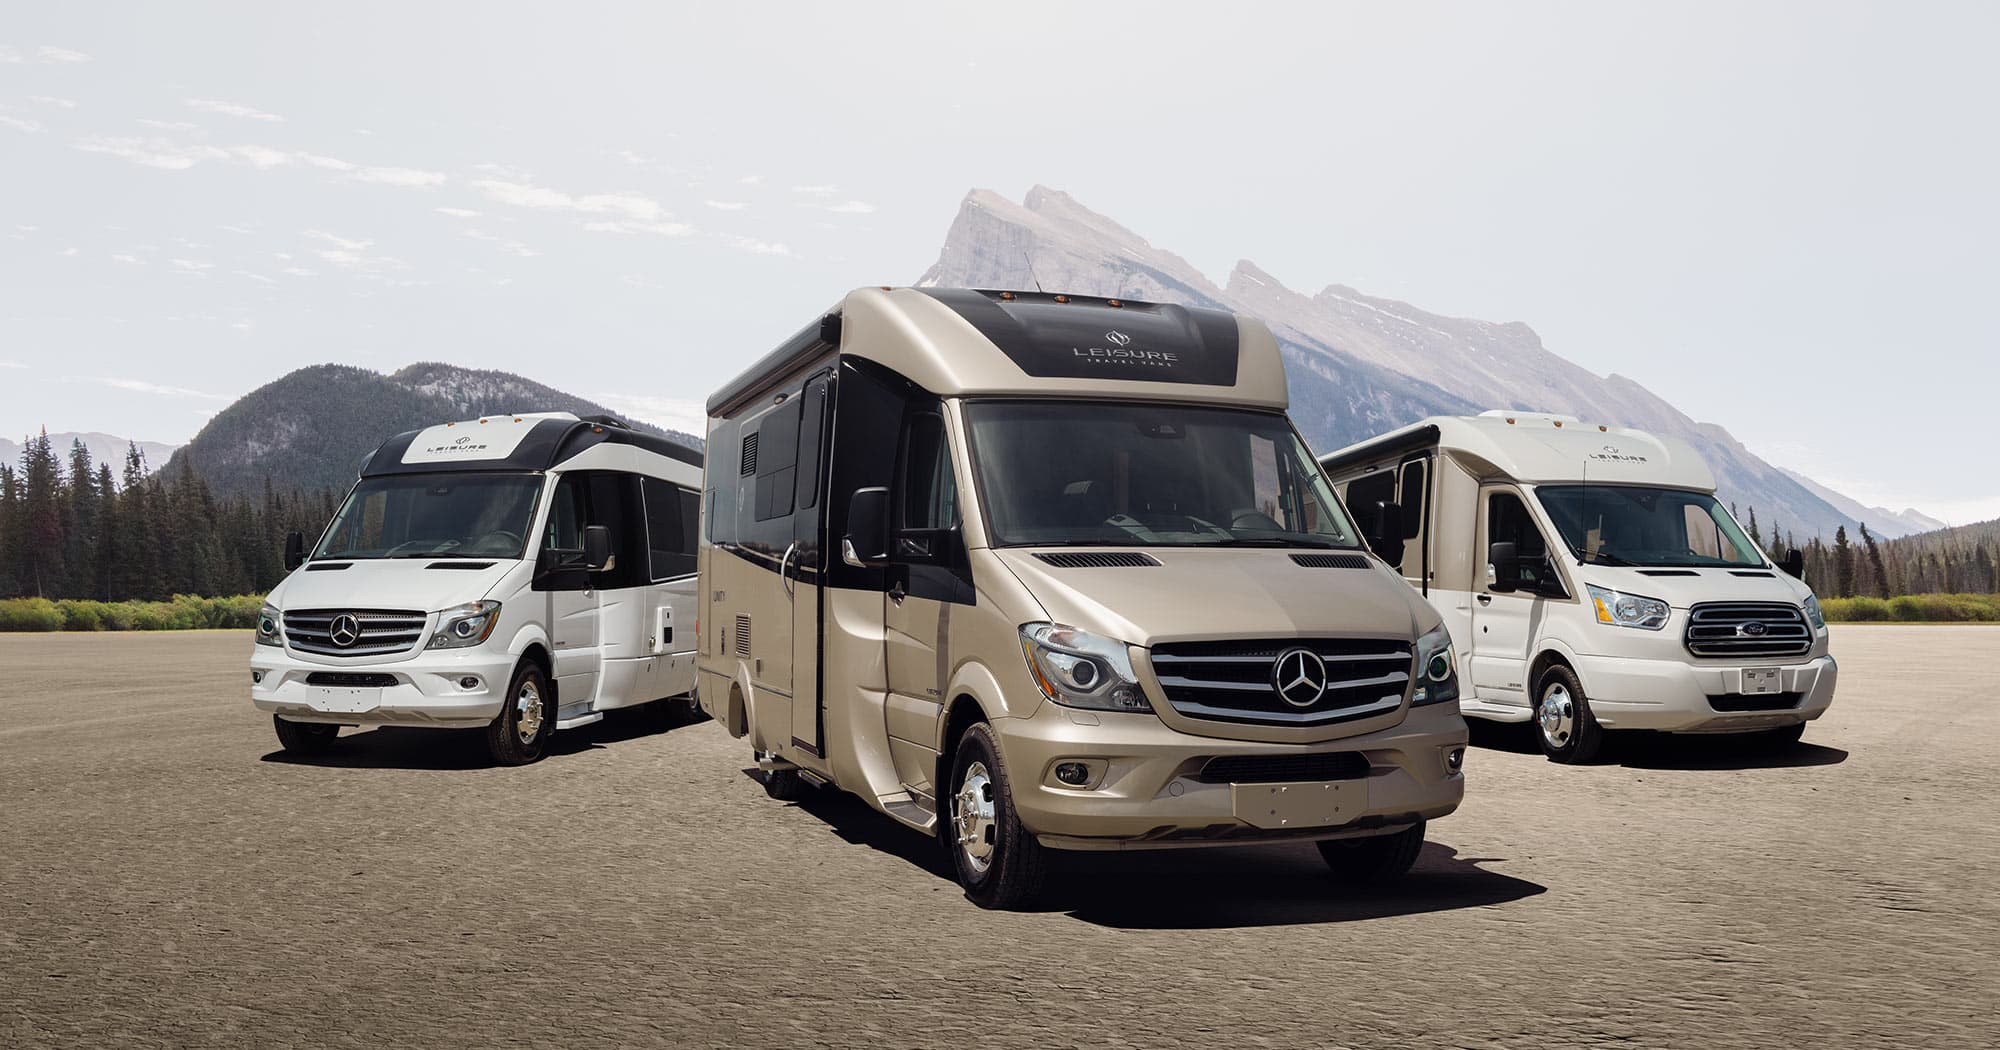 Compare Models - Leisure Travel Vans